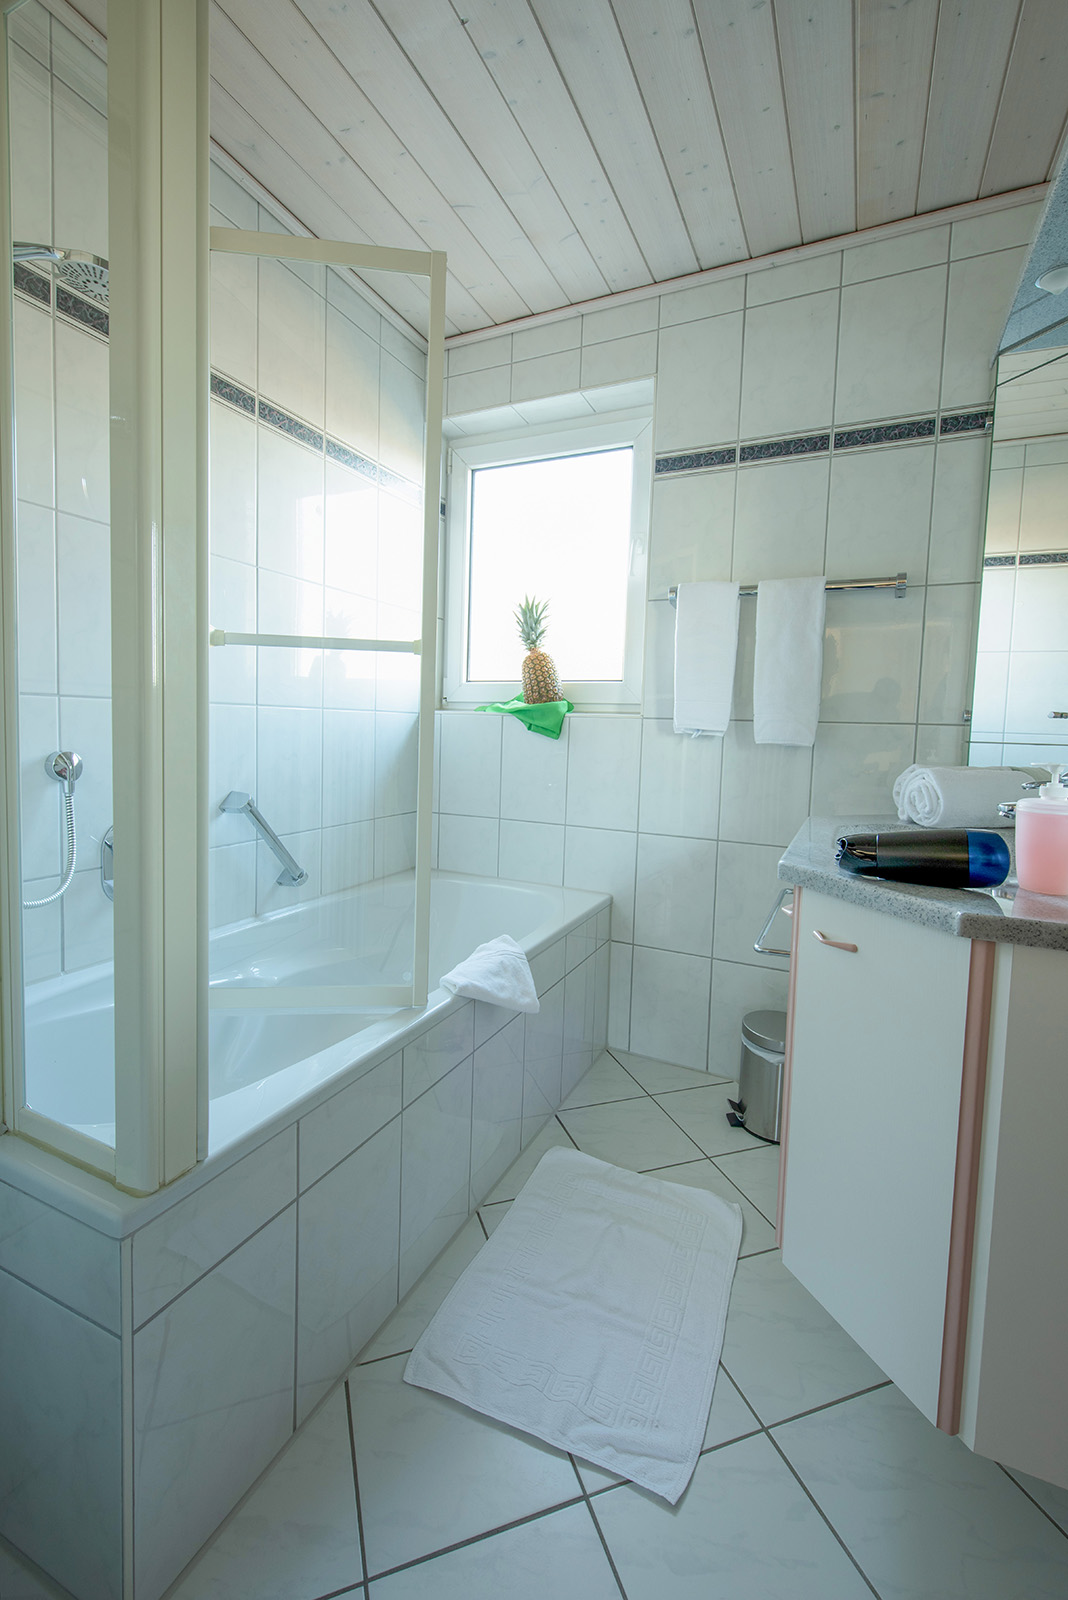 Holiday apartments on Lake Constance: Ittendorf - Bathroom